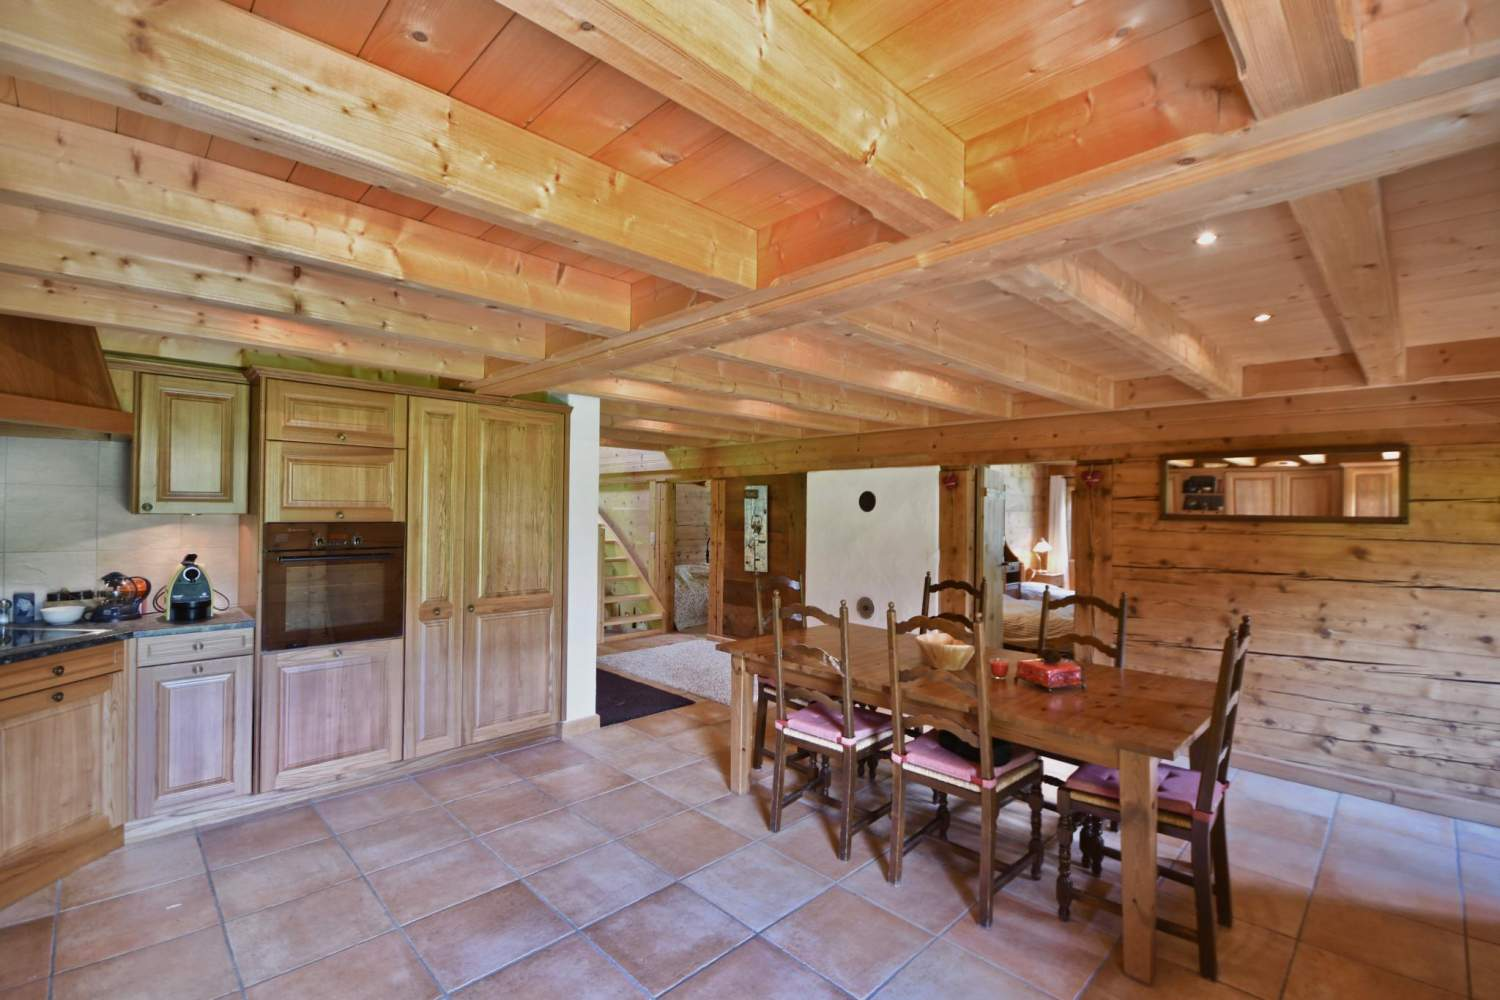 Ormont-Dessus  - Chalet 5 Bedrooms - picture 3